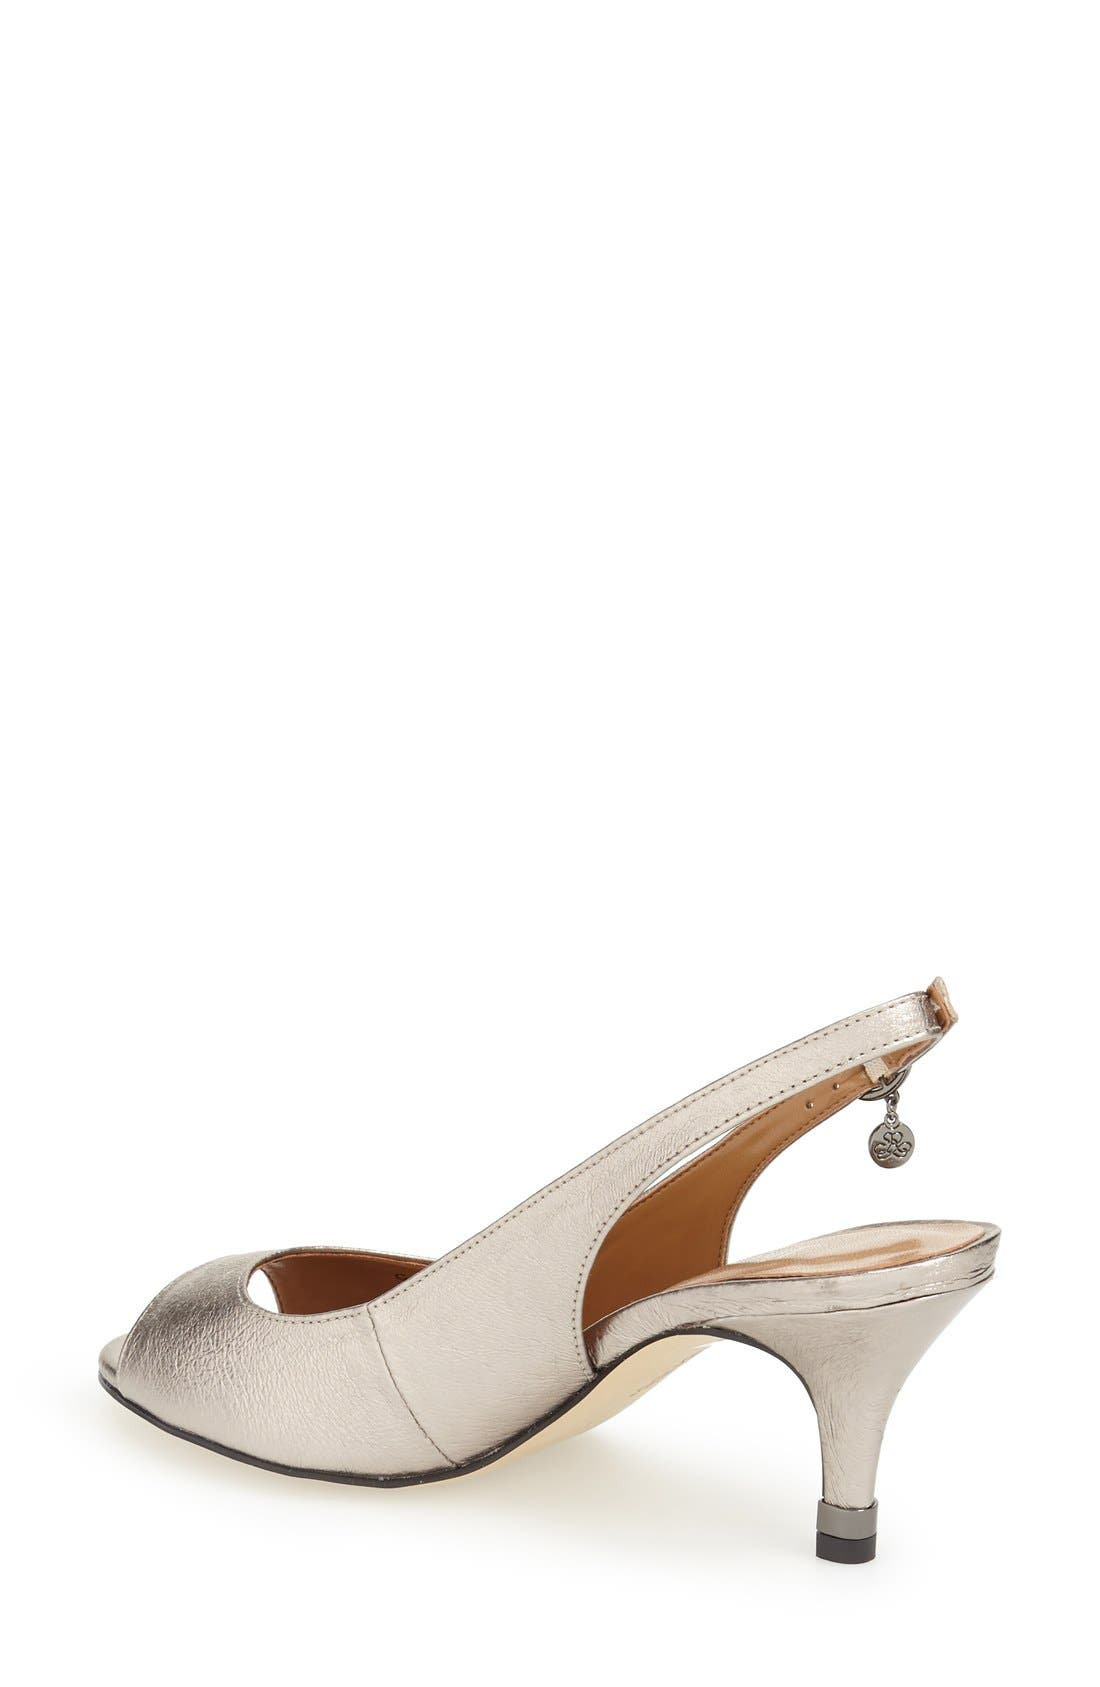 Alternate Image 2  - J. Reneé 'Gardenroad' Slingback Peep Toe Pump (Women)